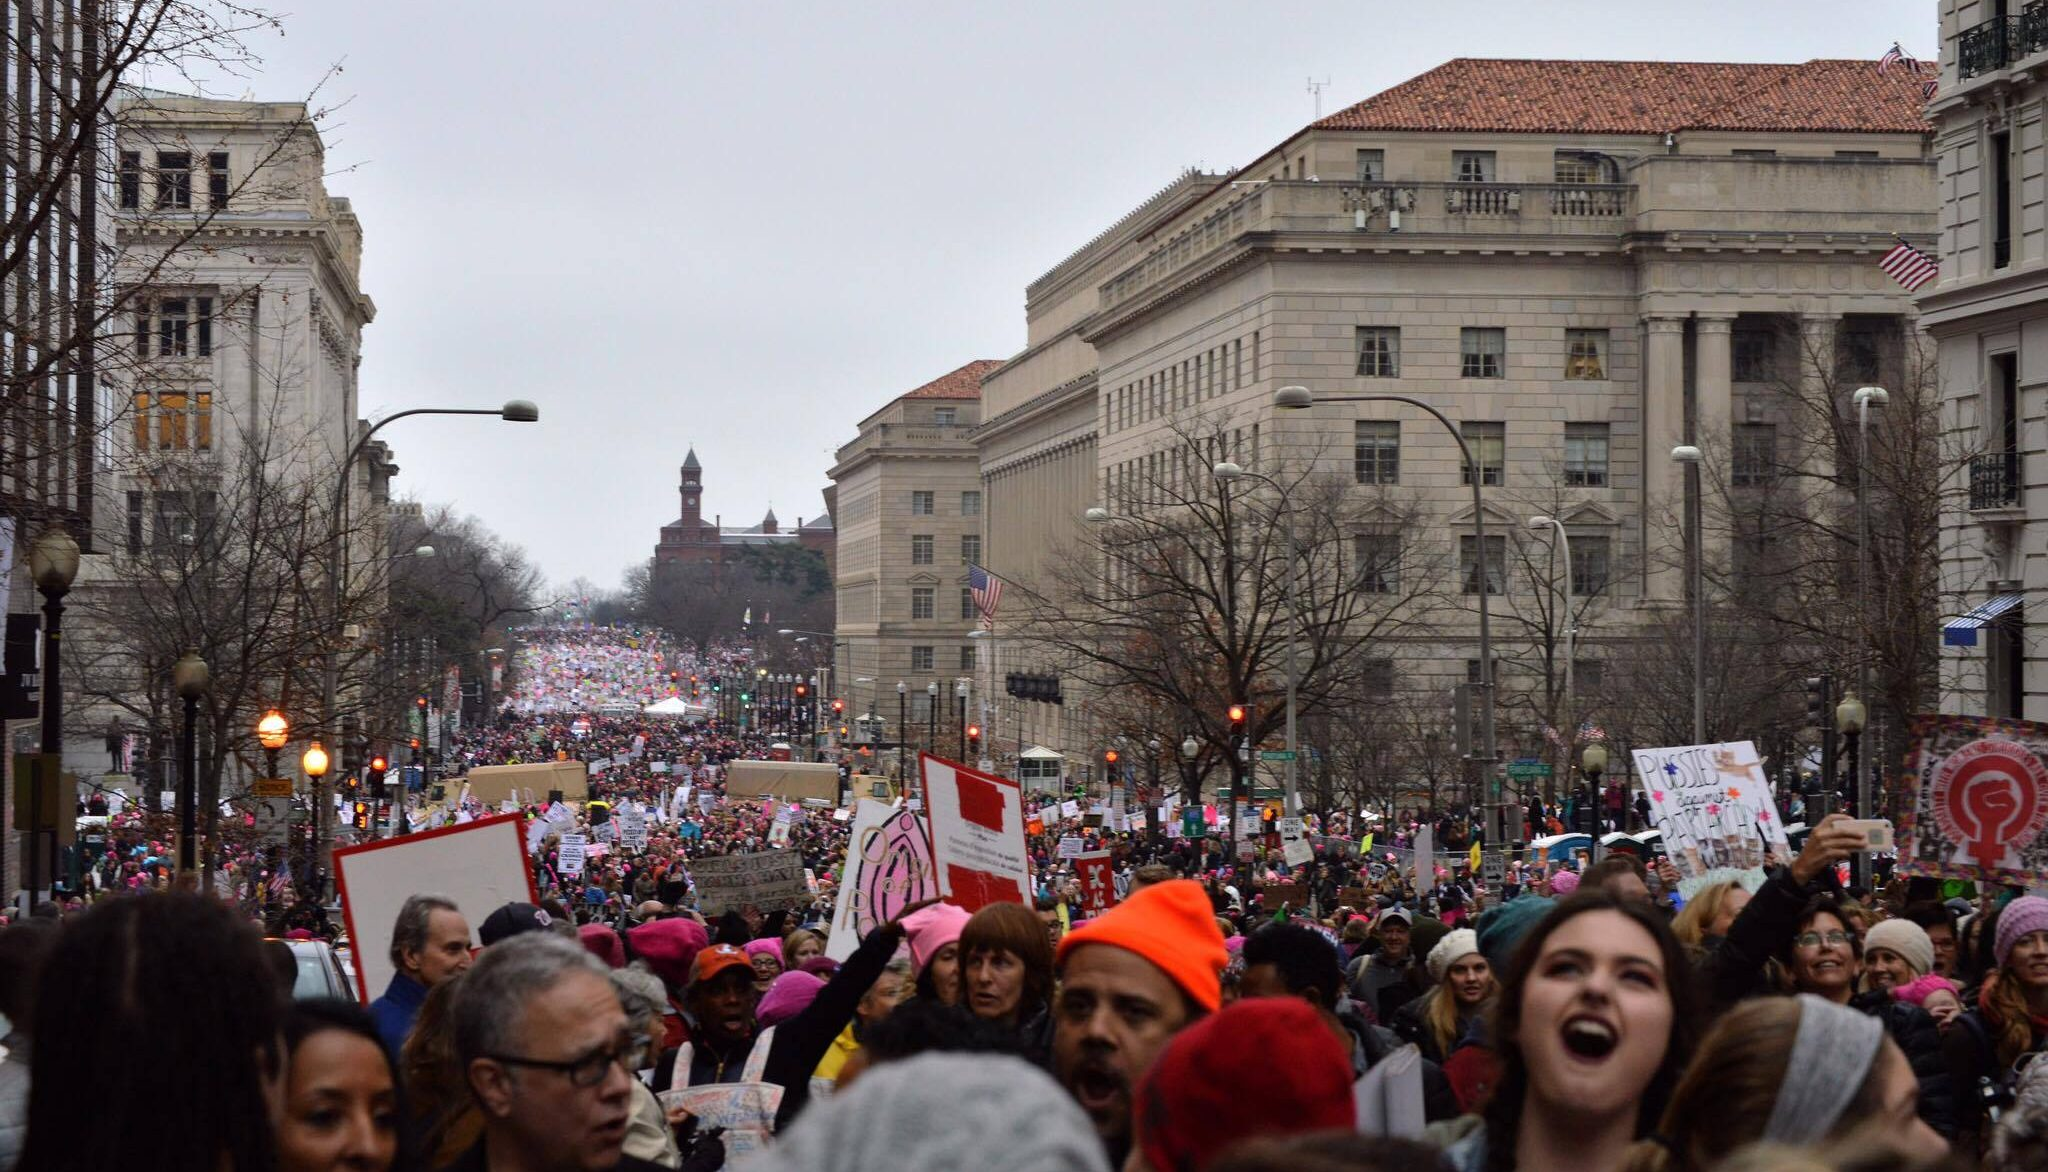 Thousands of protestors gathered in Washington D.C. on Jan. 21 to attend the Women's March on Washington, uniting for women's rights. Photo by Annabelle Gordon.